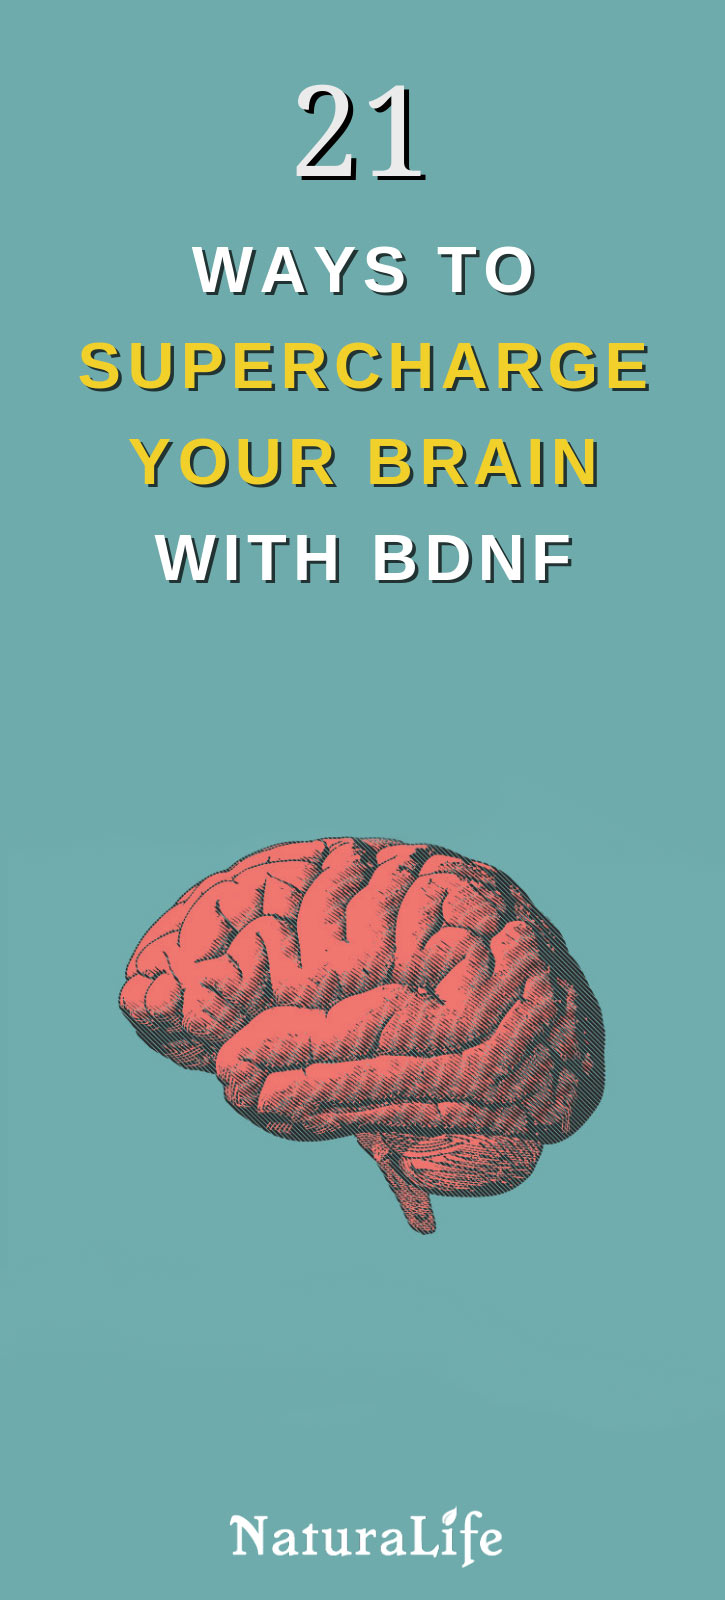 21 Ways to Increase BDNF for a Supercharged Brain